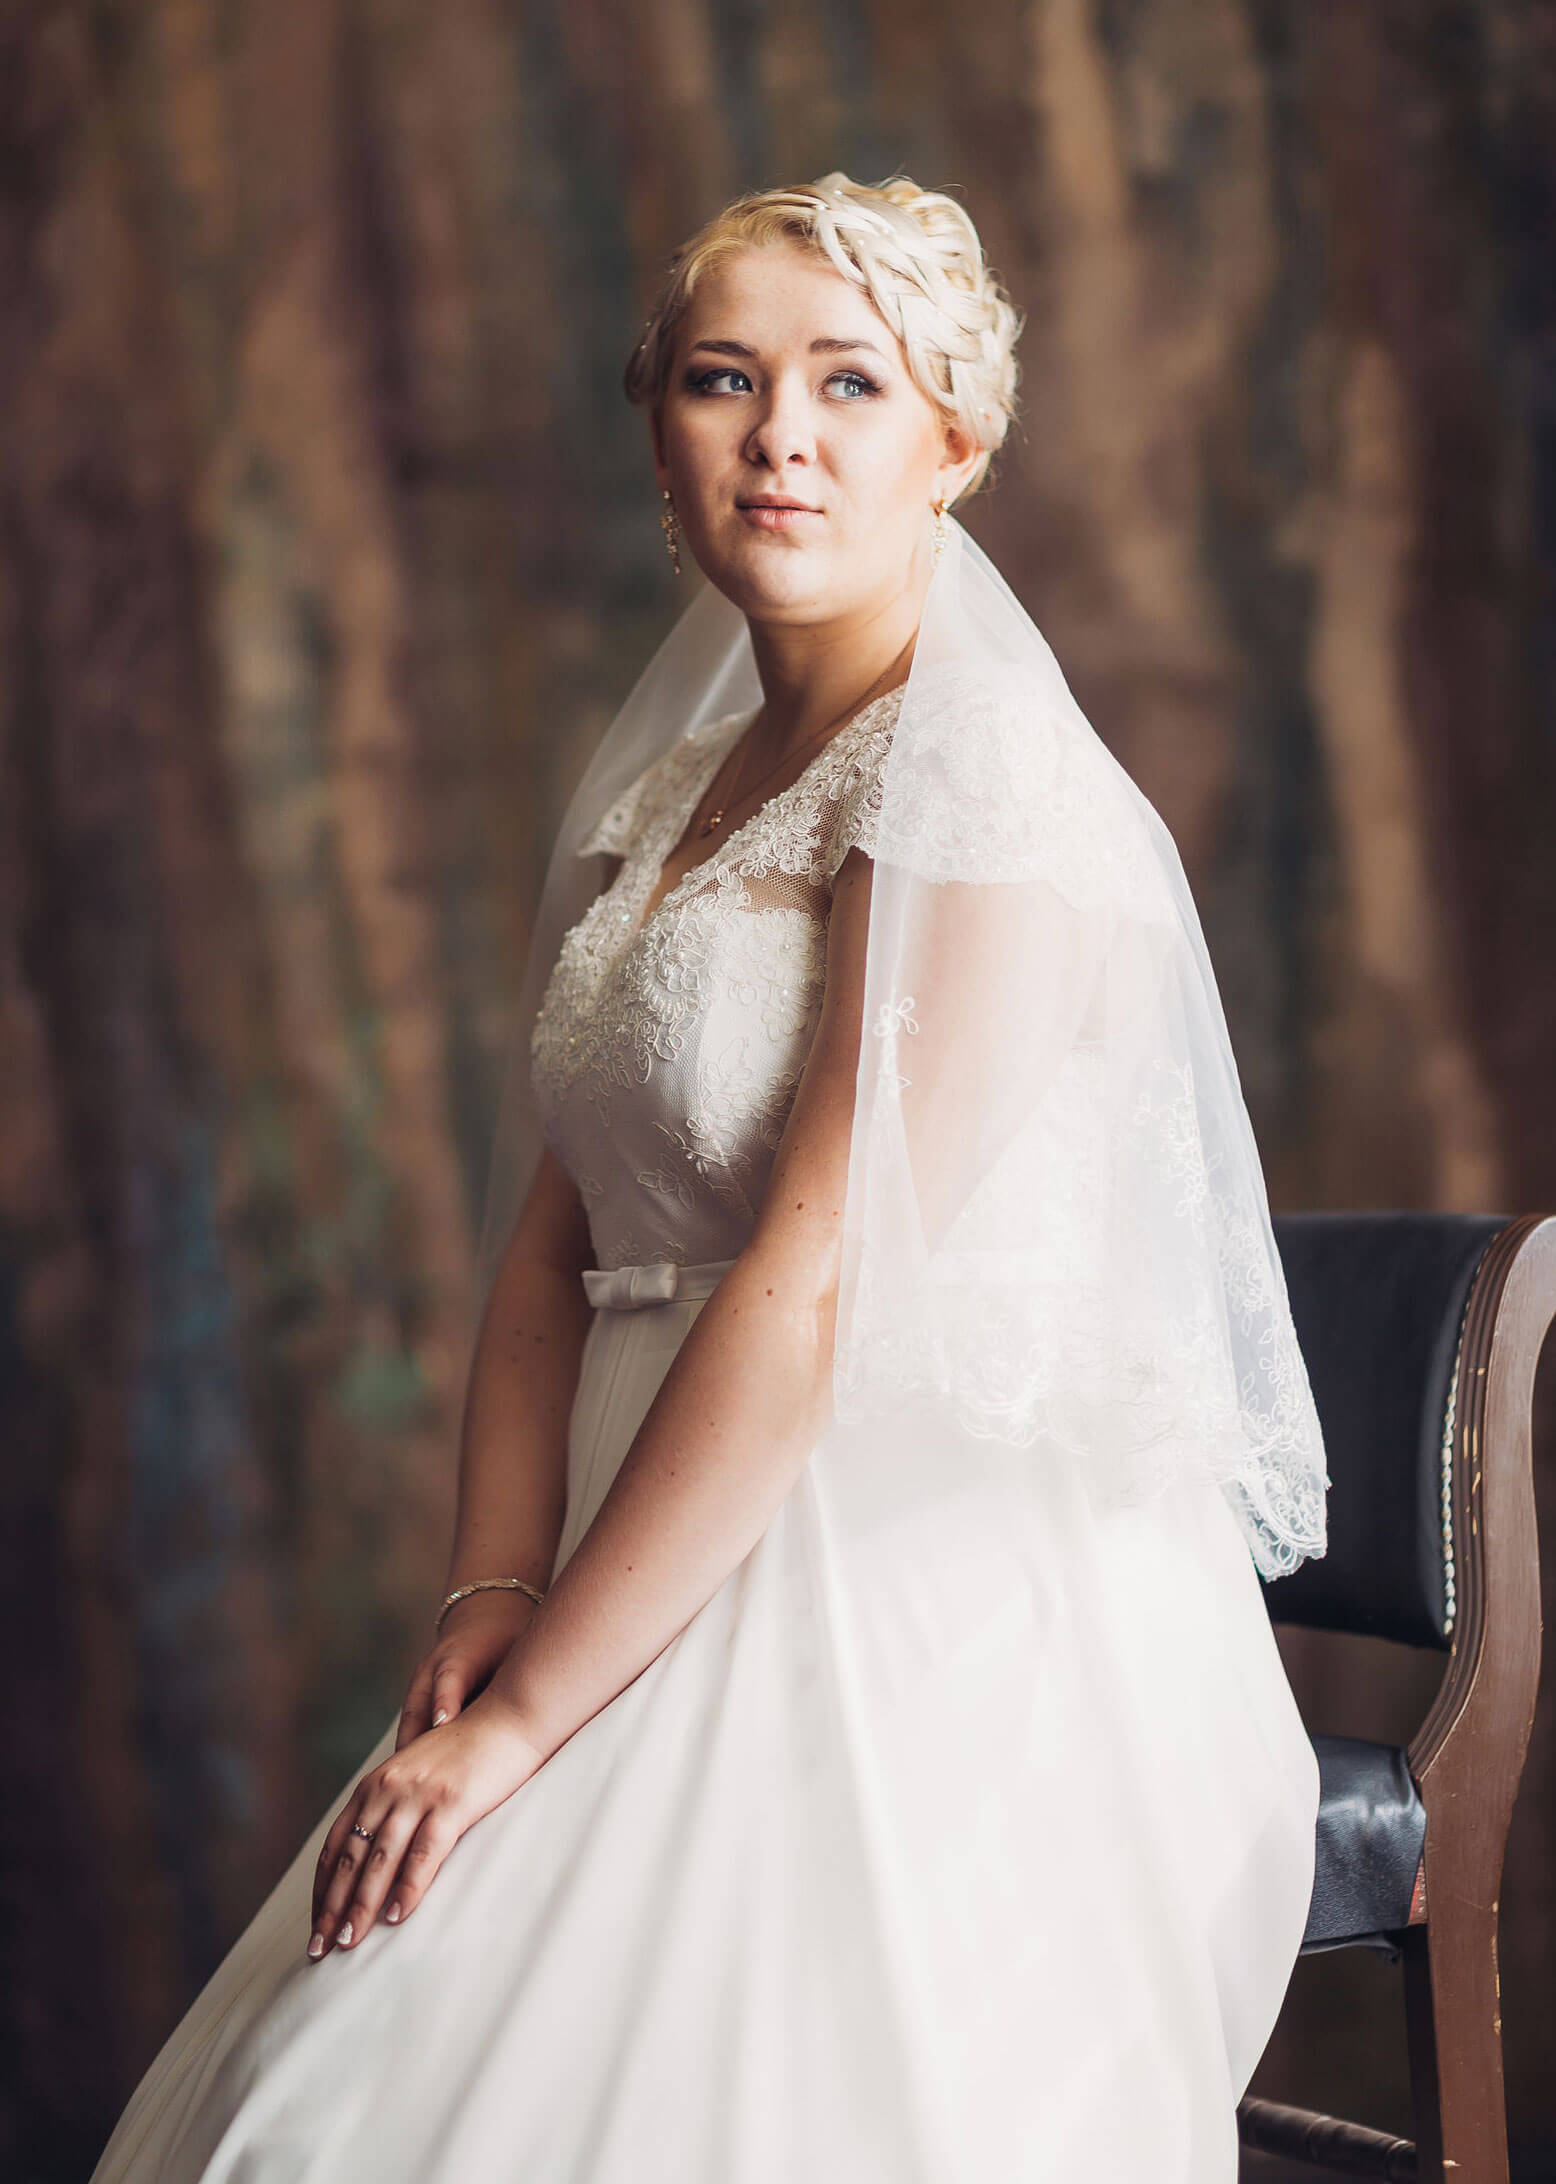 Plus Size Wedding Dresses Vt And Nh S Plus Size Salon,Wedding Guest White African Dresses For Church